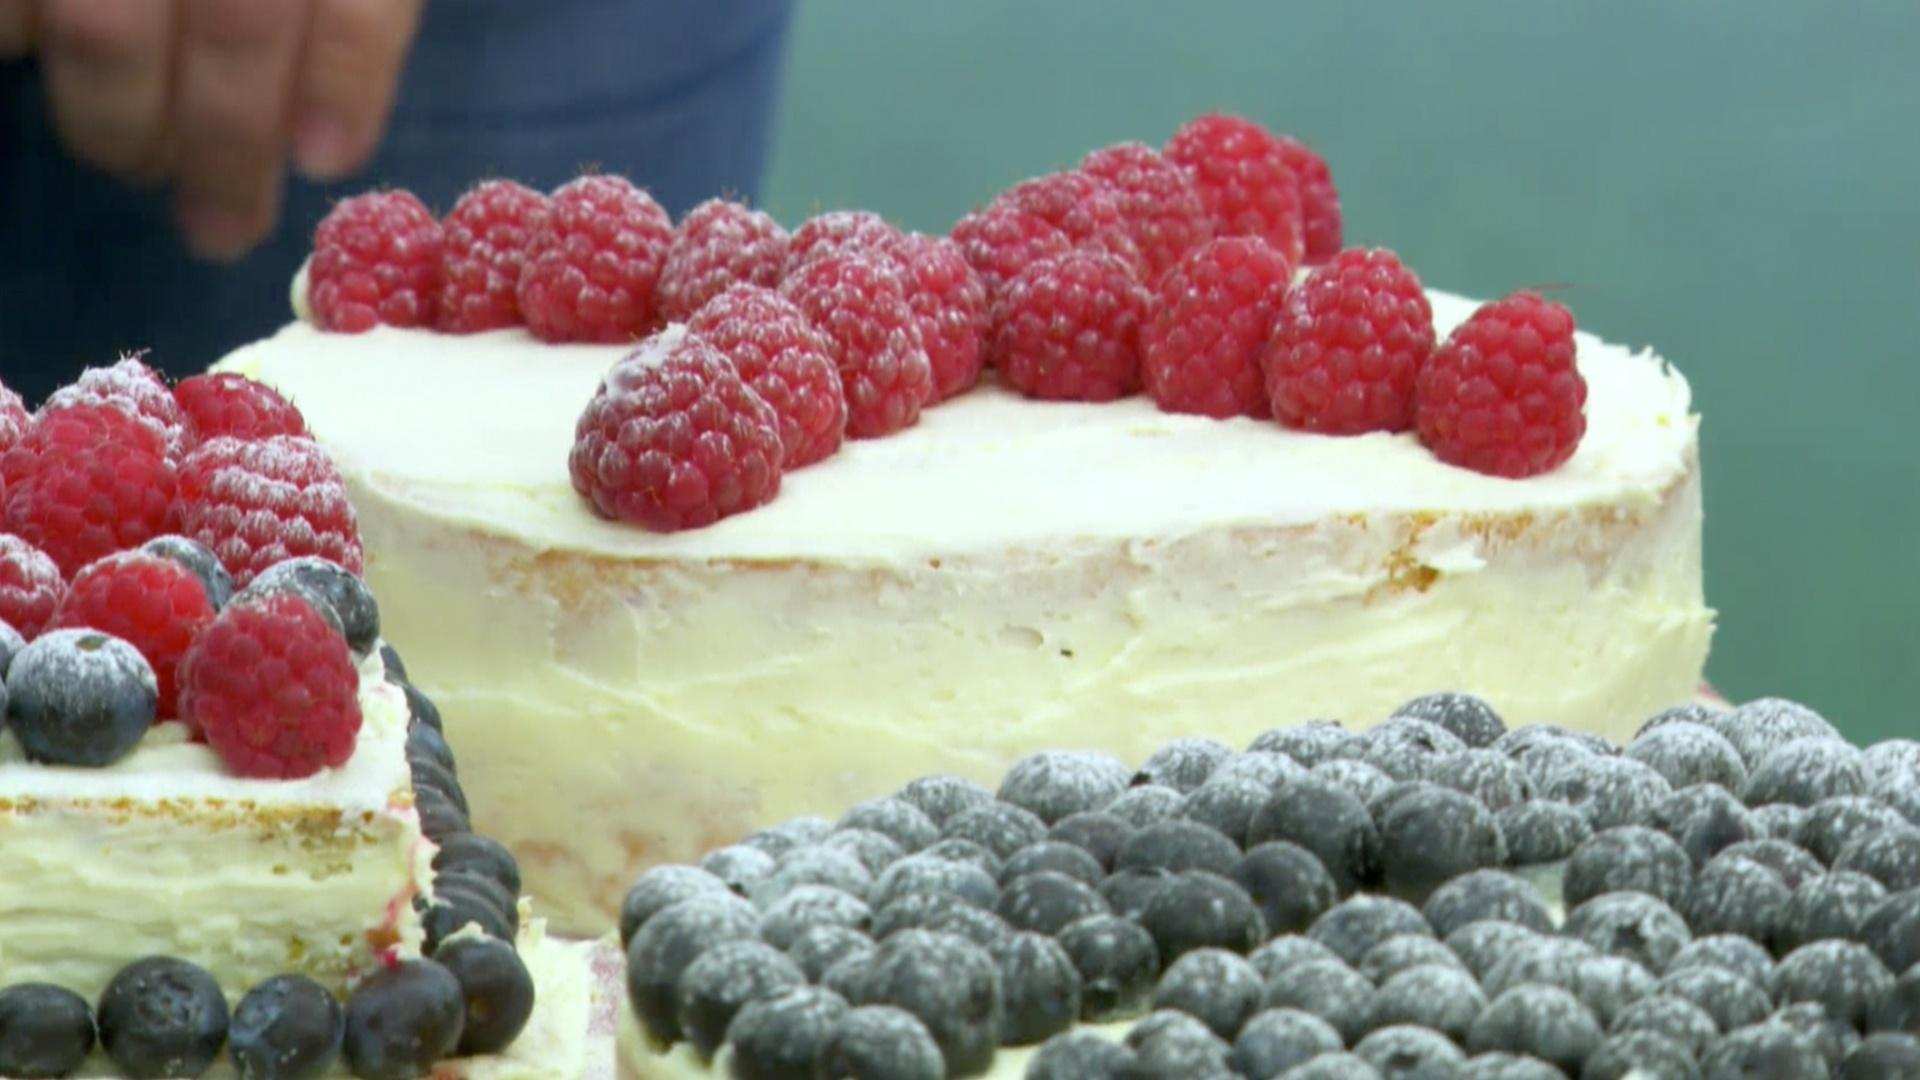 The Great British Baking Show: The Final